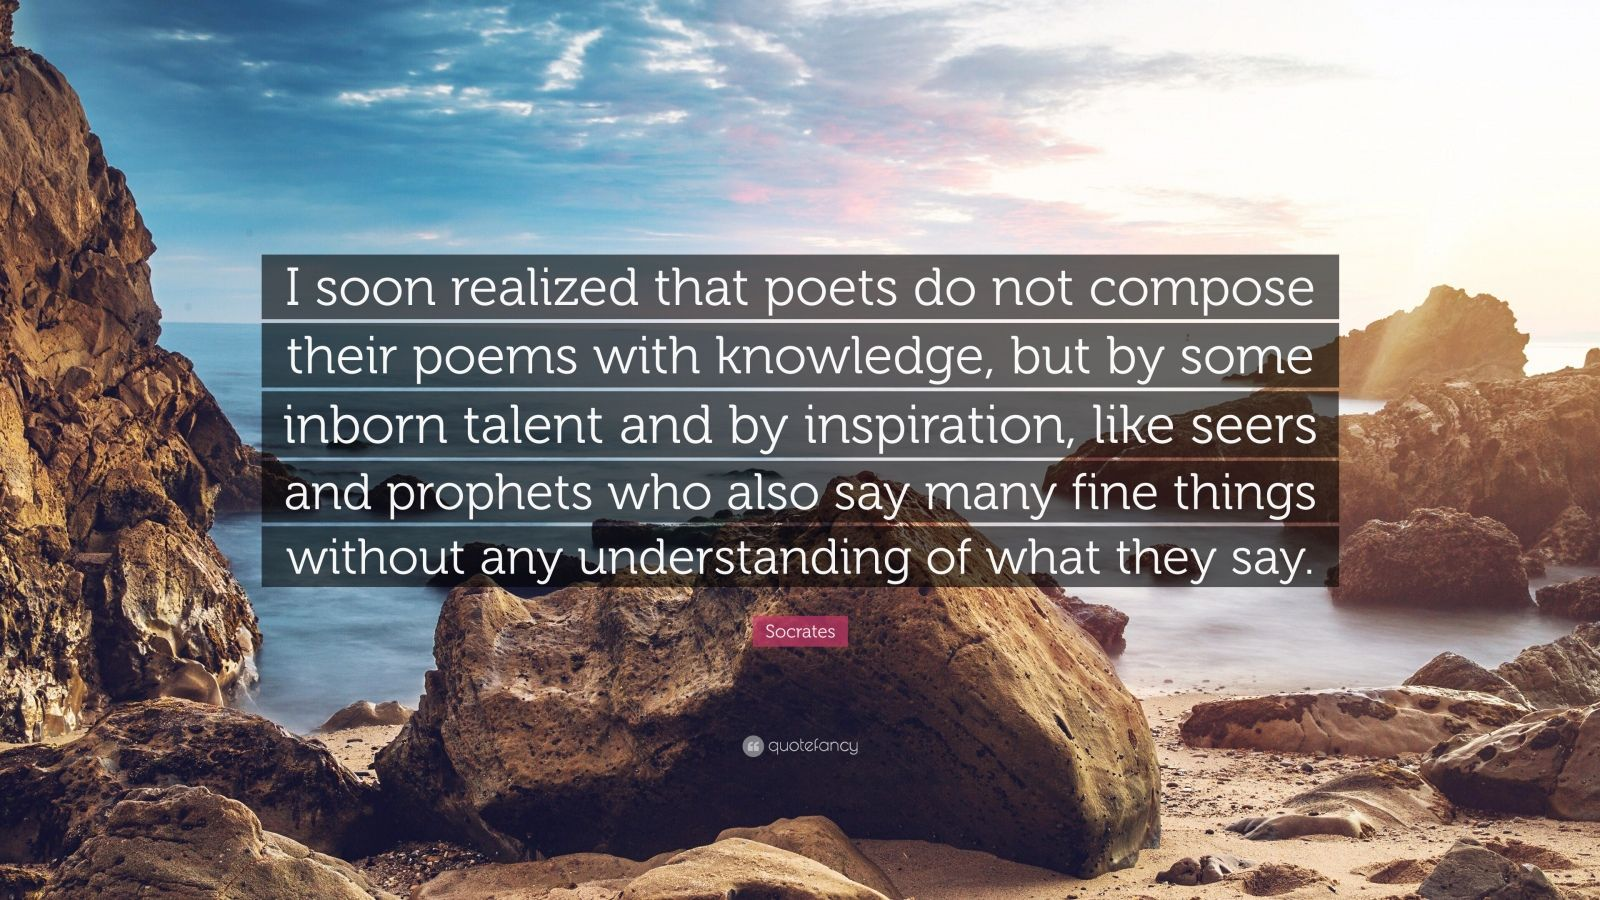 """Socrates Quote: """"I soon realized that poets do not compose their poems with knowledge, but by some inborn talent and by inspiration, like seers and prophets who also say many fine things without any understanding of what they say."""""""